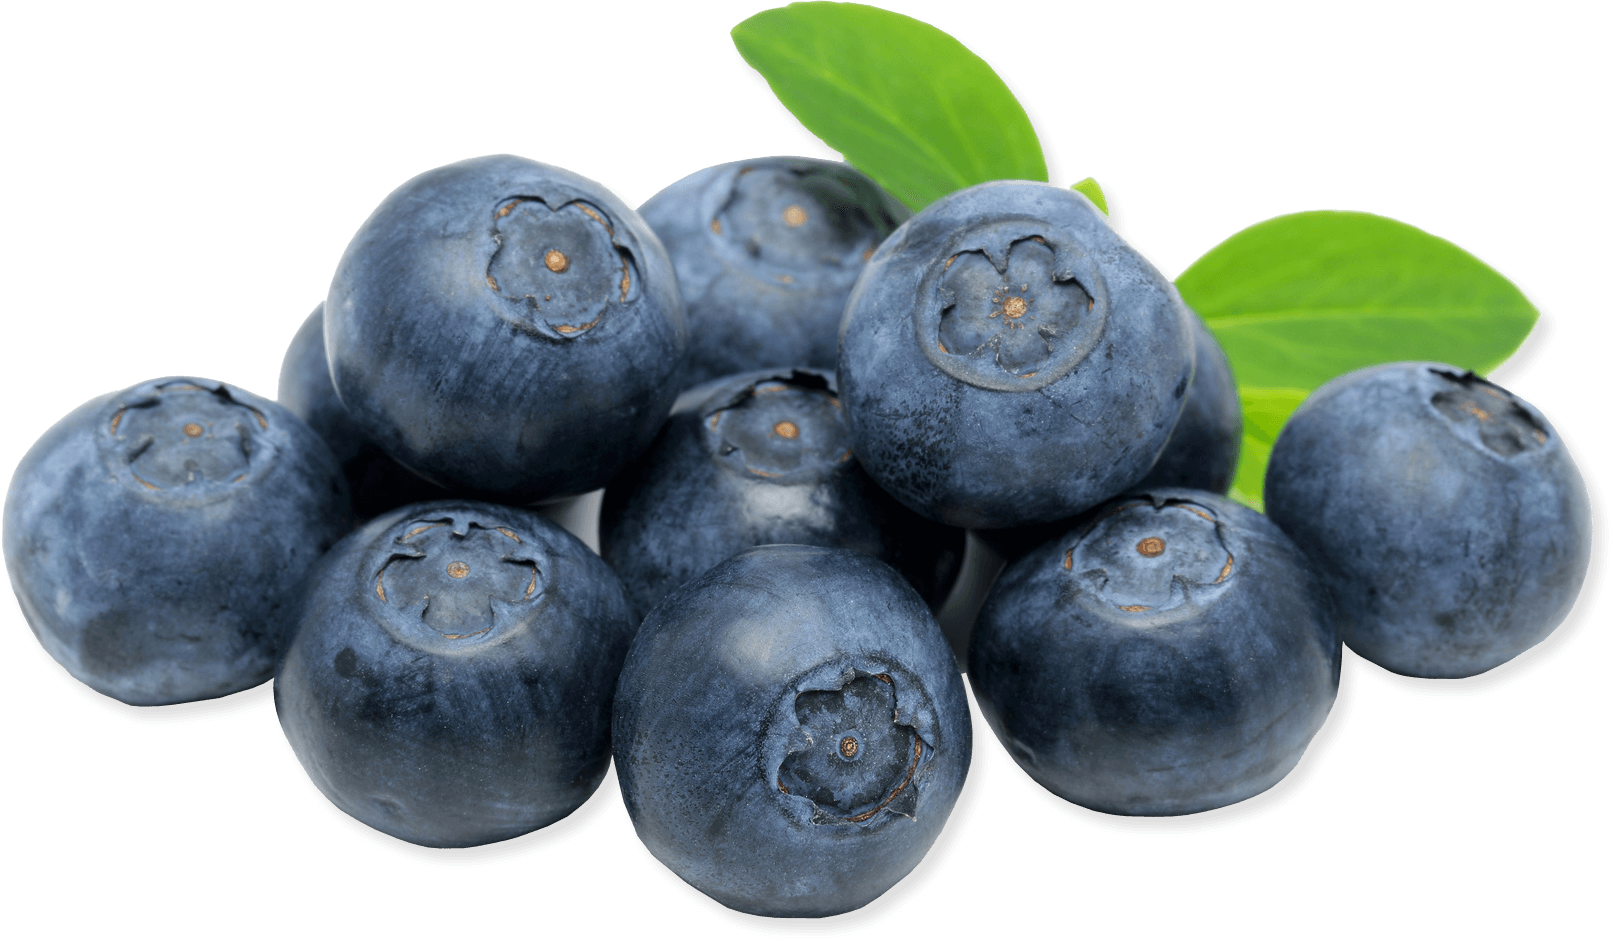 free download Blueberries icon web icons. Transparent fruit blueberry